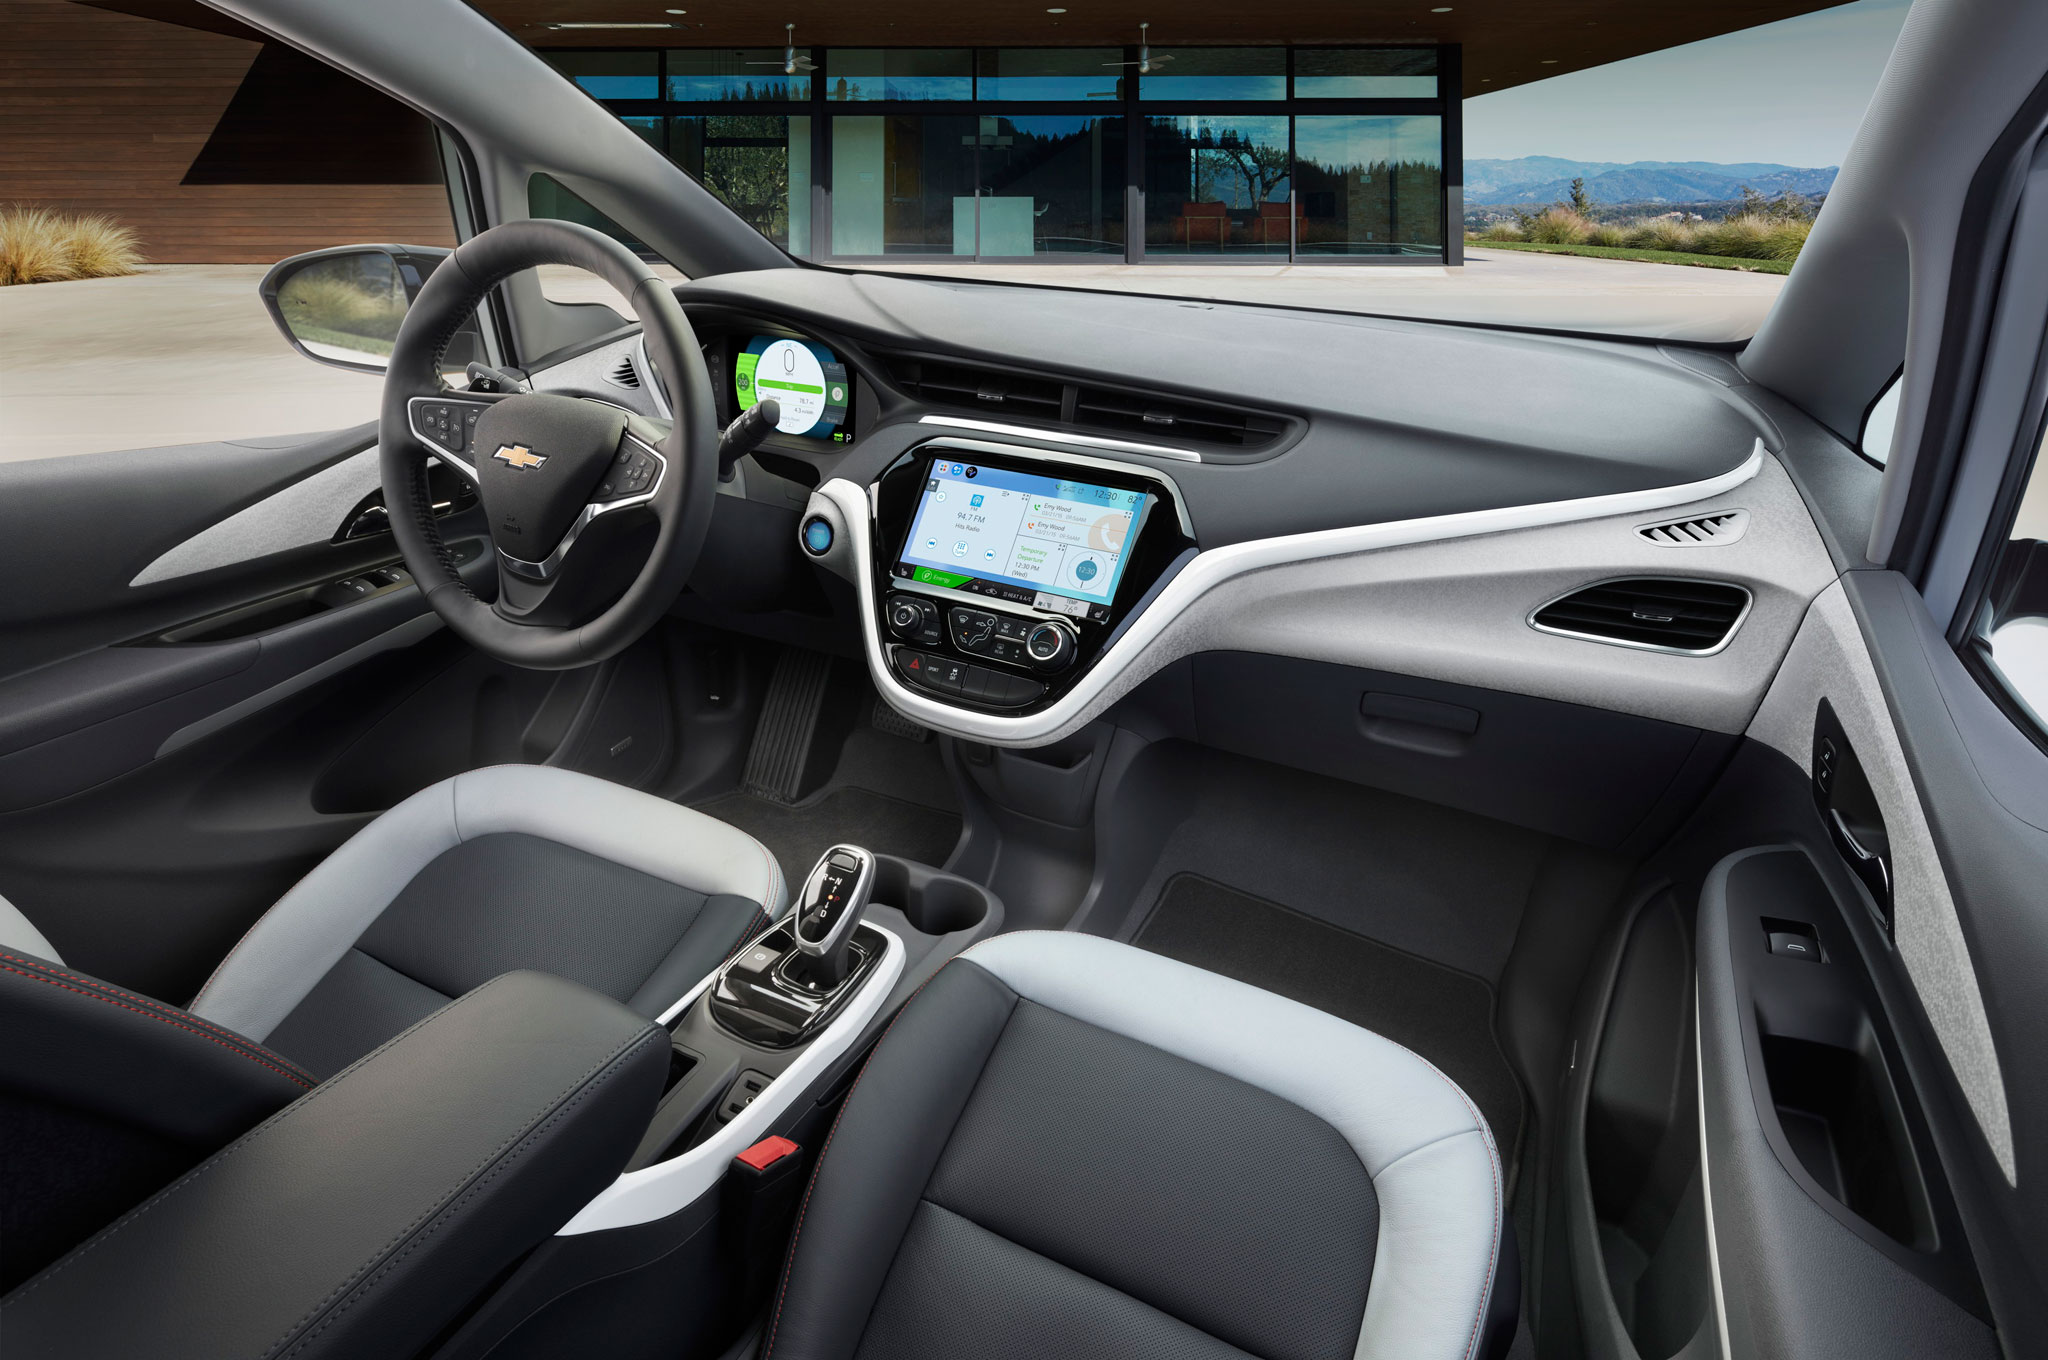 2017 Chevrolet Bolt EV interior